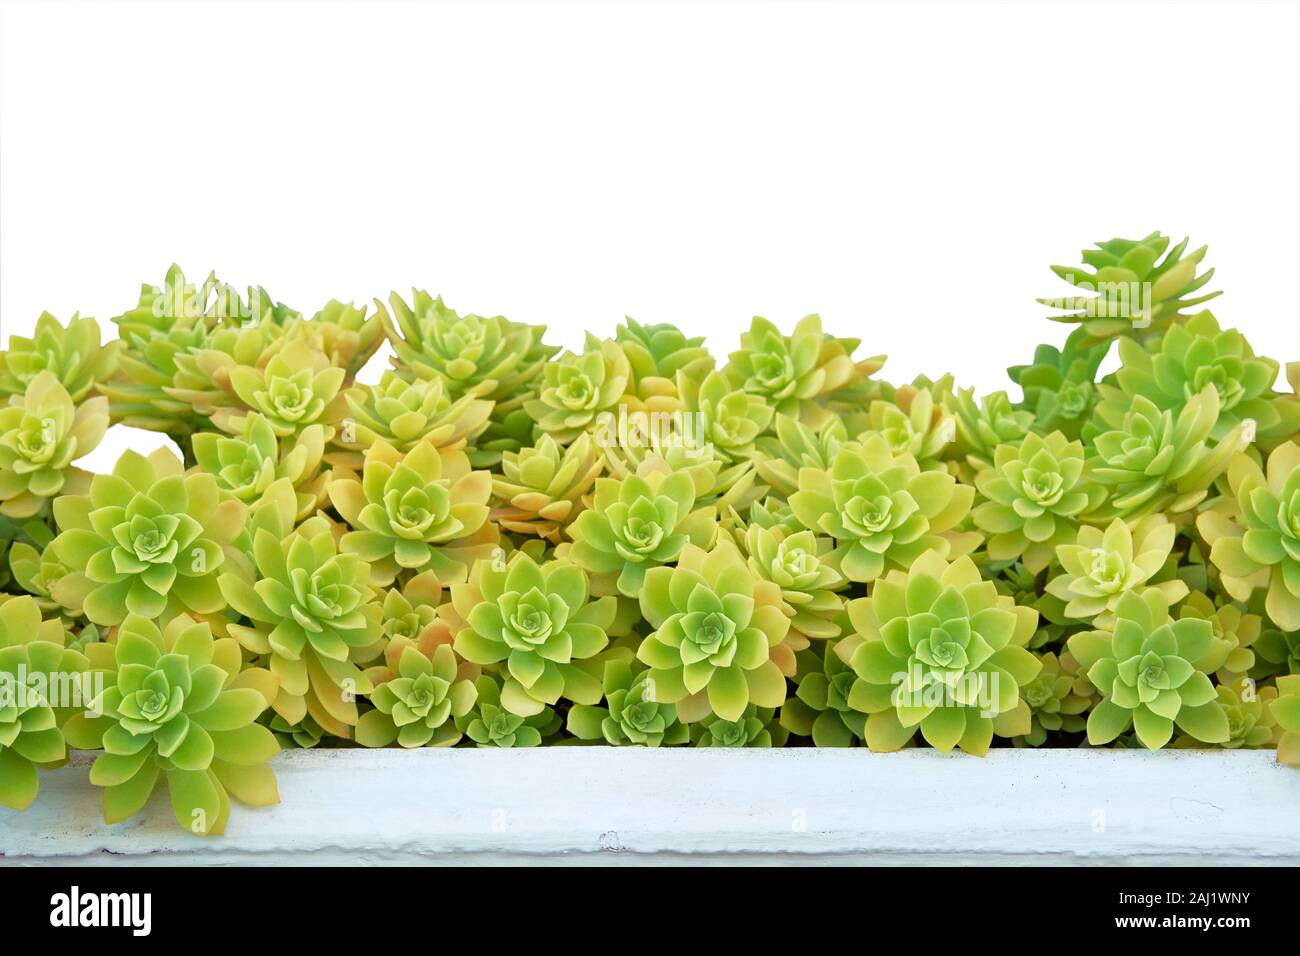 Succulents In Pot Isolated On White Background Aeonium Plants Succulent Plant For Landscape Design Potted Plants For House Green Pattern Stock Photo Alamy